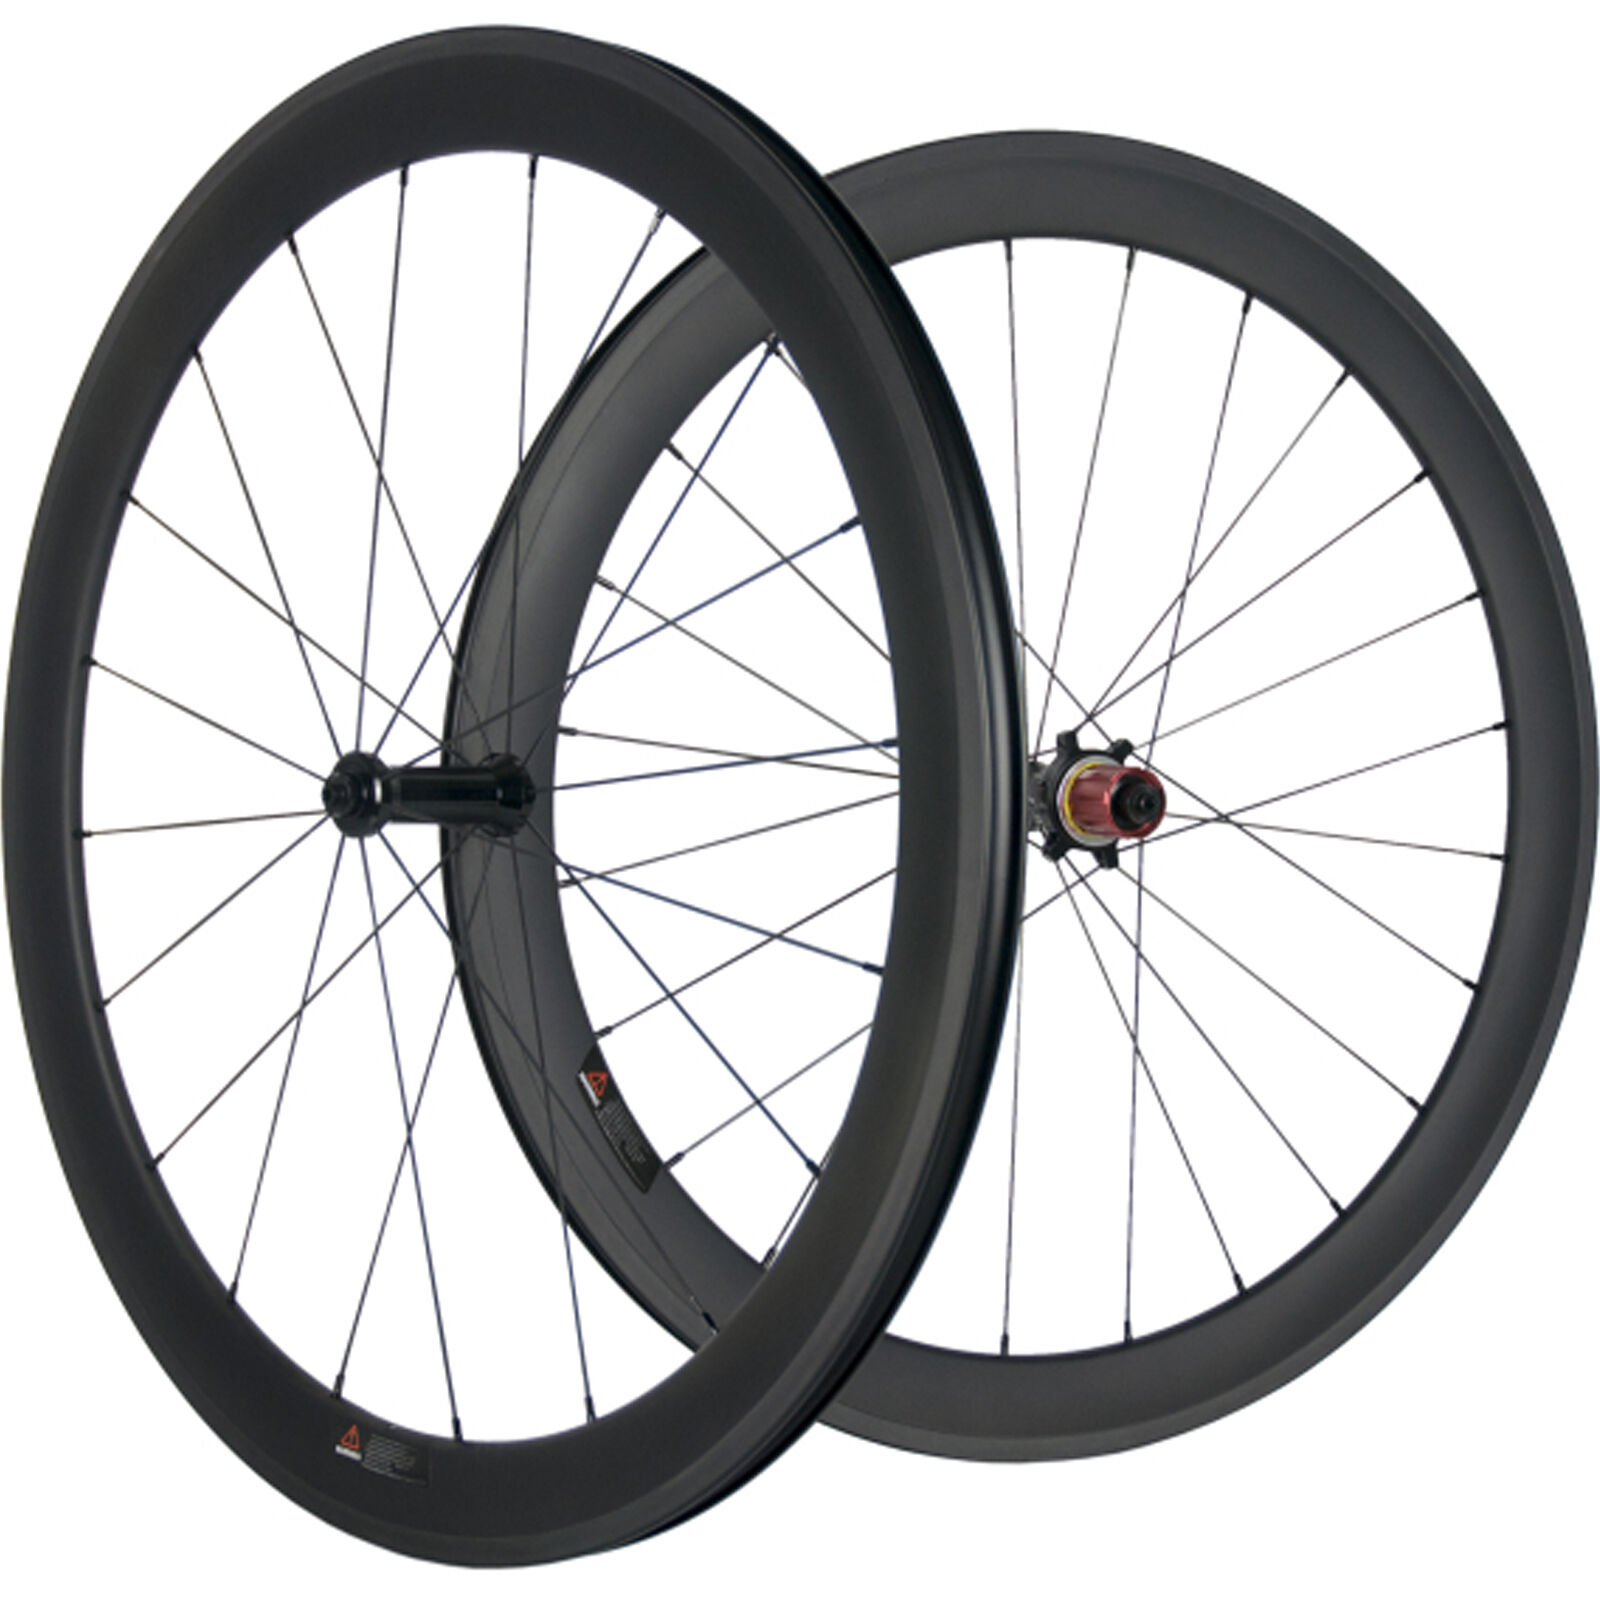 Carbon  Wheels Road Bike 50mm Carbon Clincher Wheelset Chosen 7187 Cycling Wheel  brand